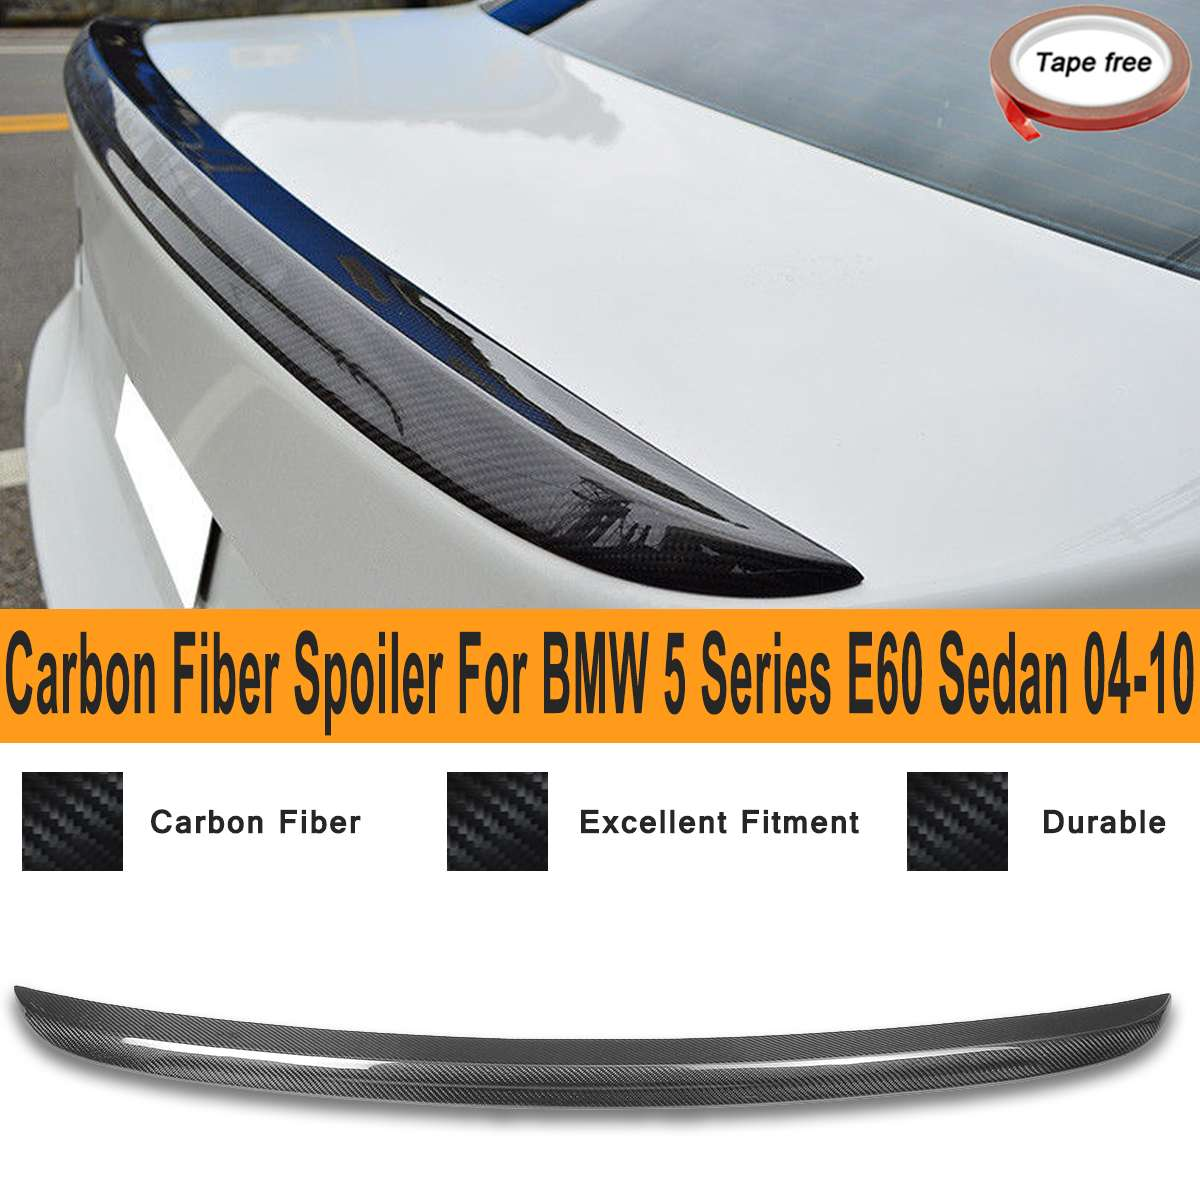 Real Carbon Fiber Rear Trunk Spoiler Wing for BMW 5 Series E60 Sedan M5 Style 2004-2010 Exterior Replacement PartsReal Carbon Fiber Rear Trunk Spoiler Wing for BMW 5 Series E60 Sedan M5 Style 2004-2010 Exterior Replacement Parts